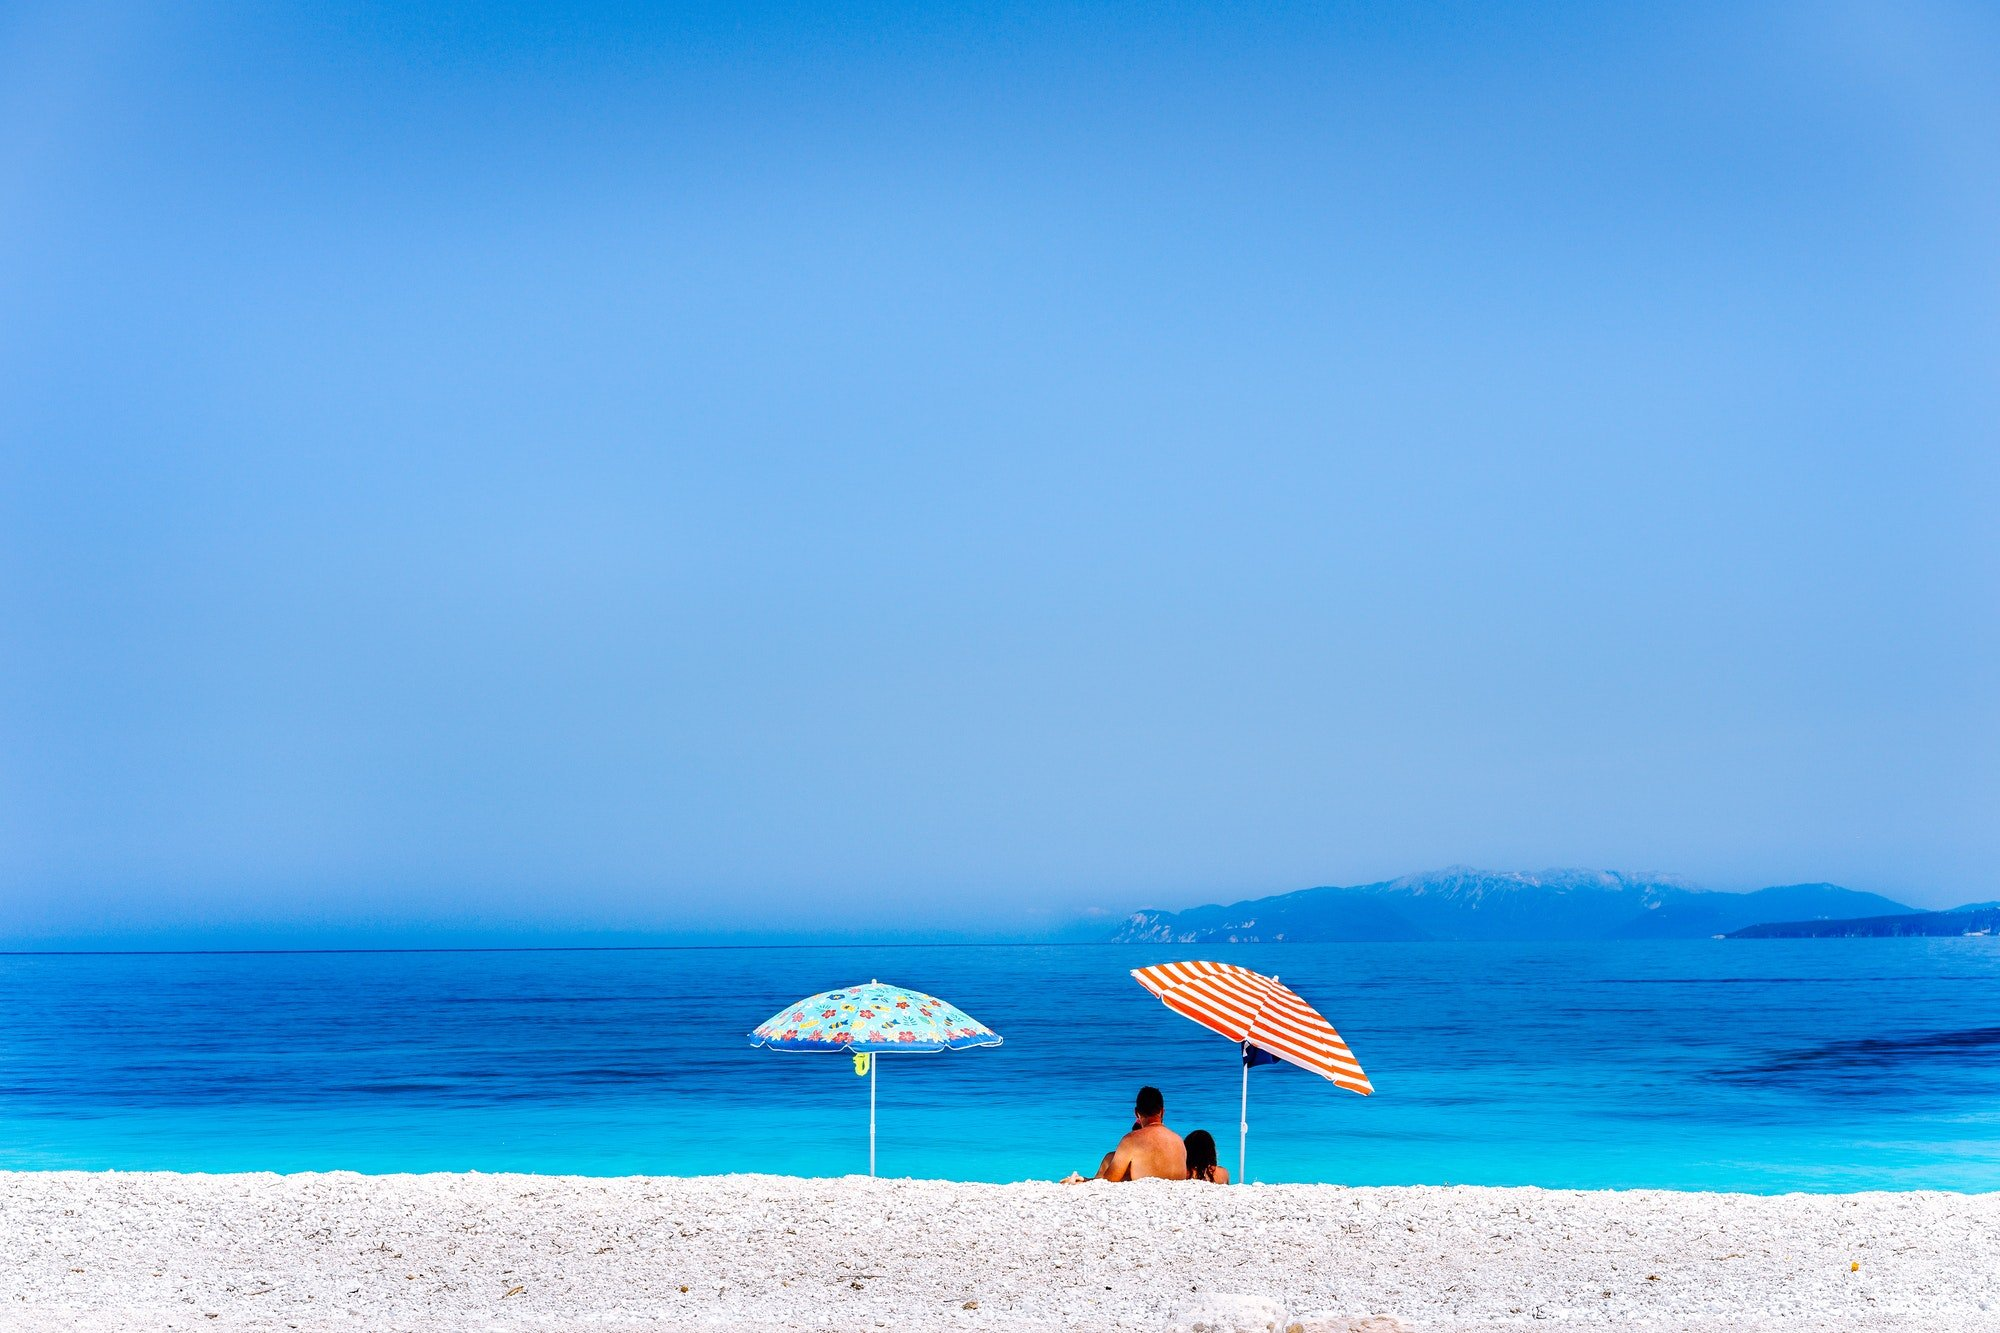 Colorful beach umbrellas crystal clear turquoise sea water paradise hidden beach. Summer concept